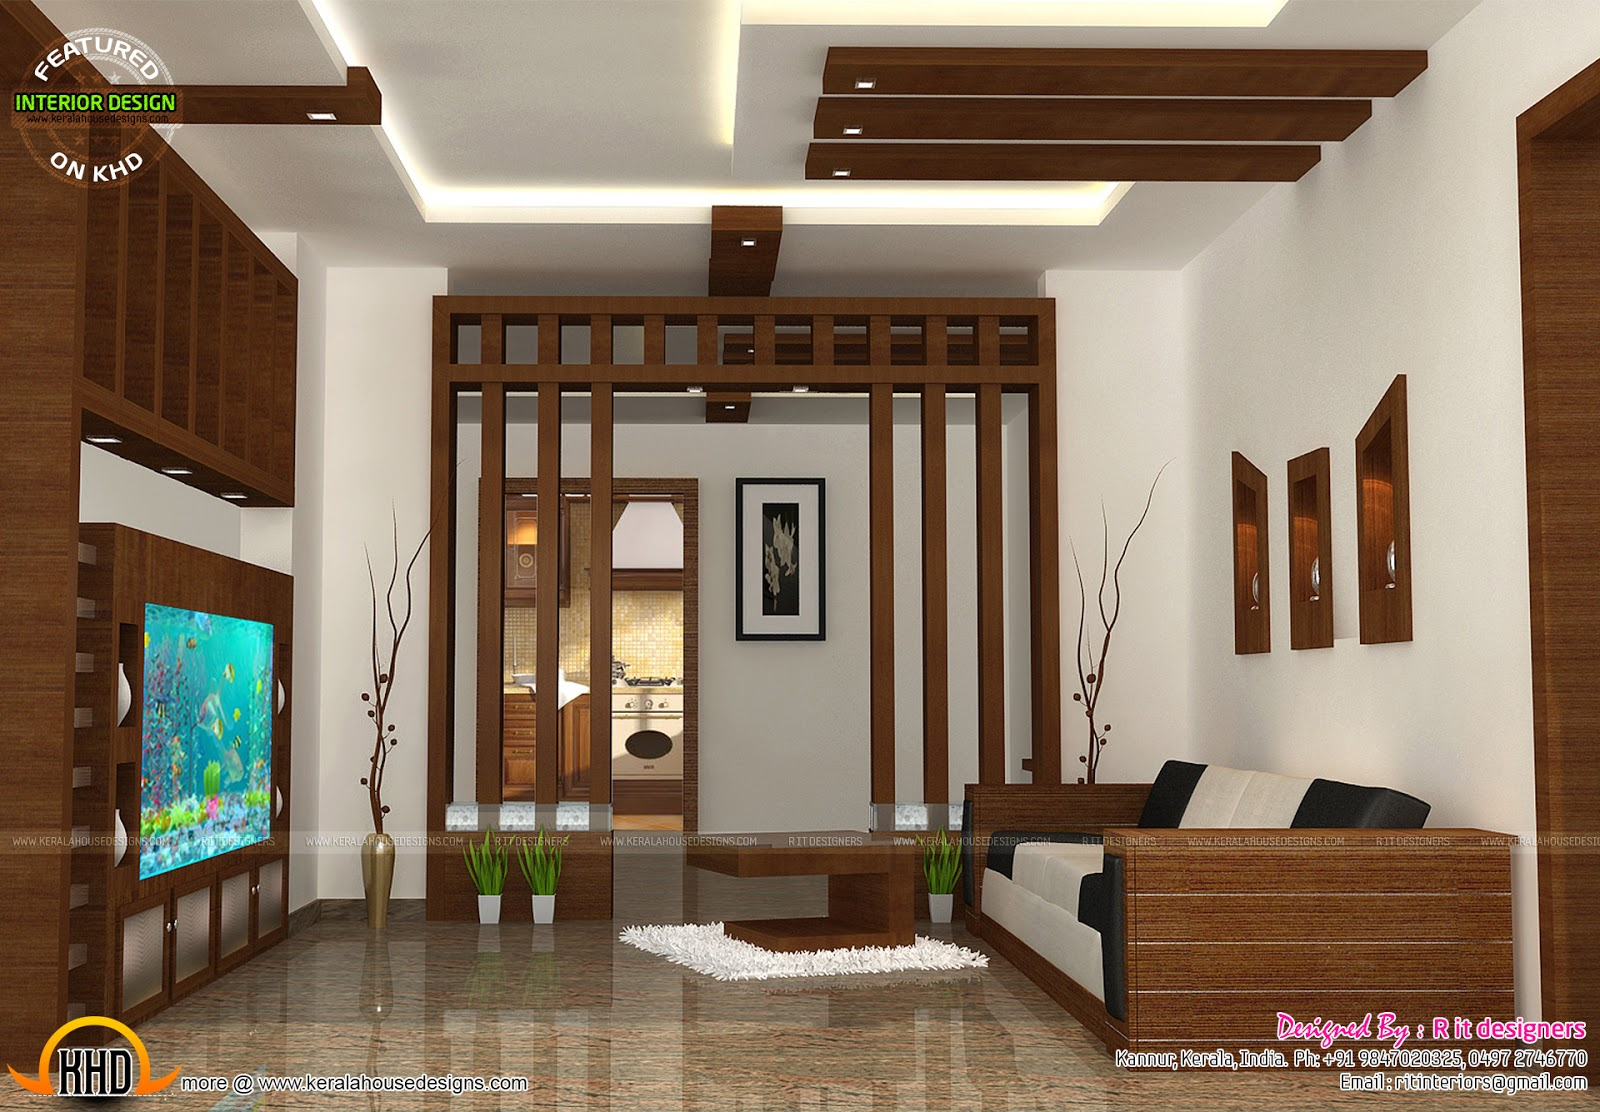 Wooden finish interiors kerala home design and floor plans for Small hall interior design photos india